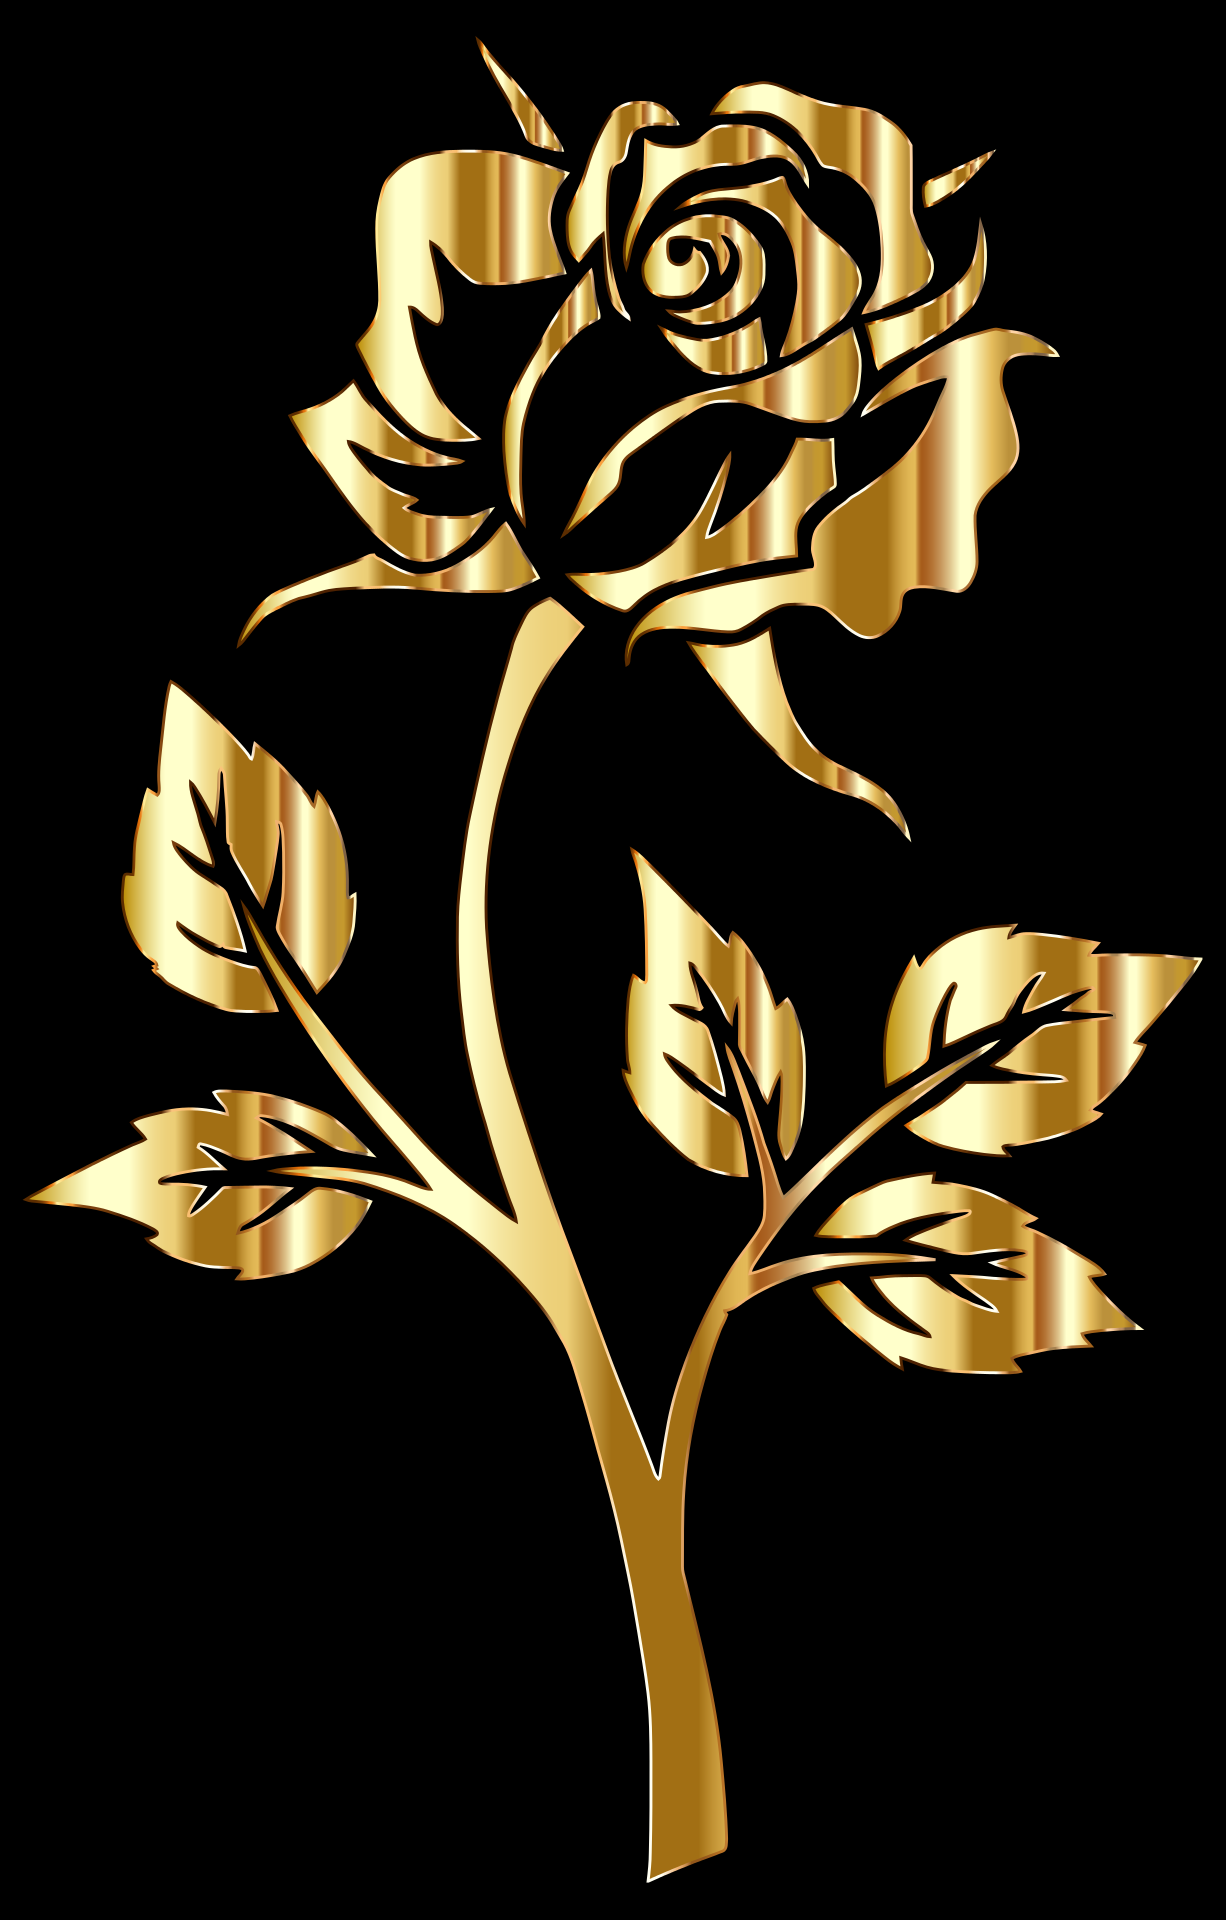 Painted Golden Rose On Black Background Free Image